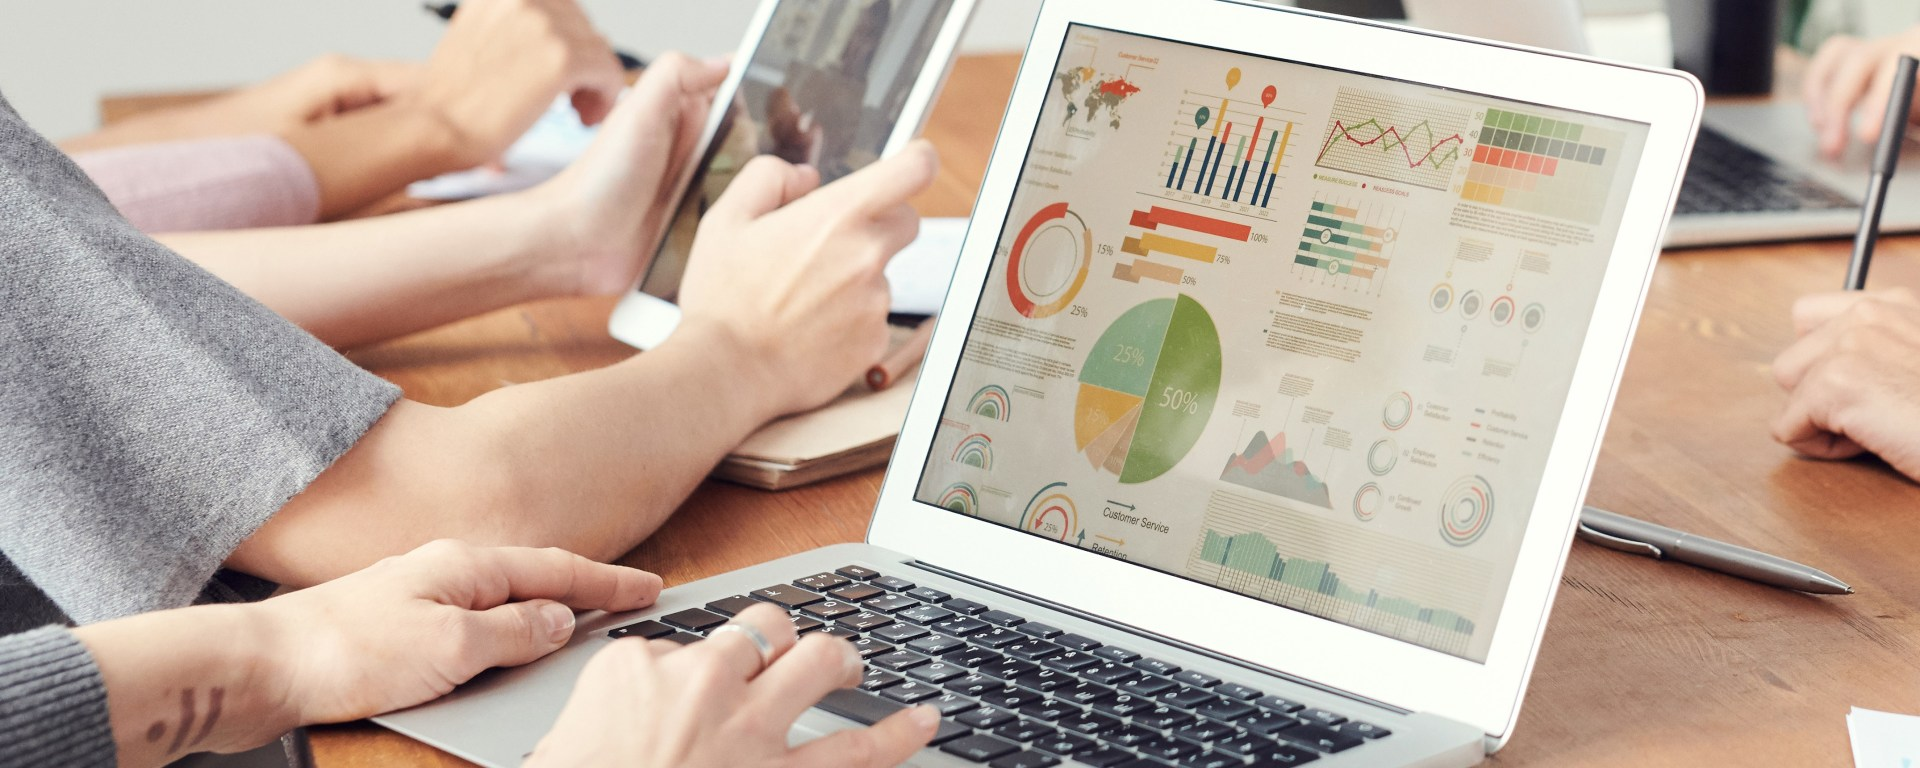 5 Benefits of using data analysis to grow your business